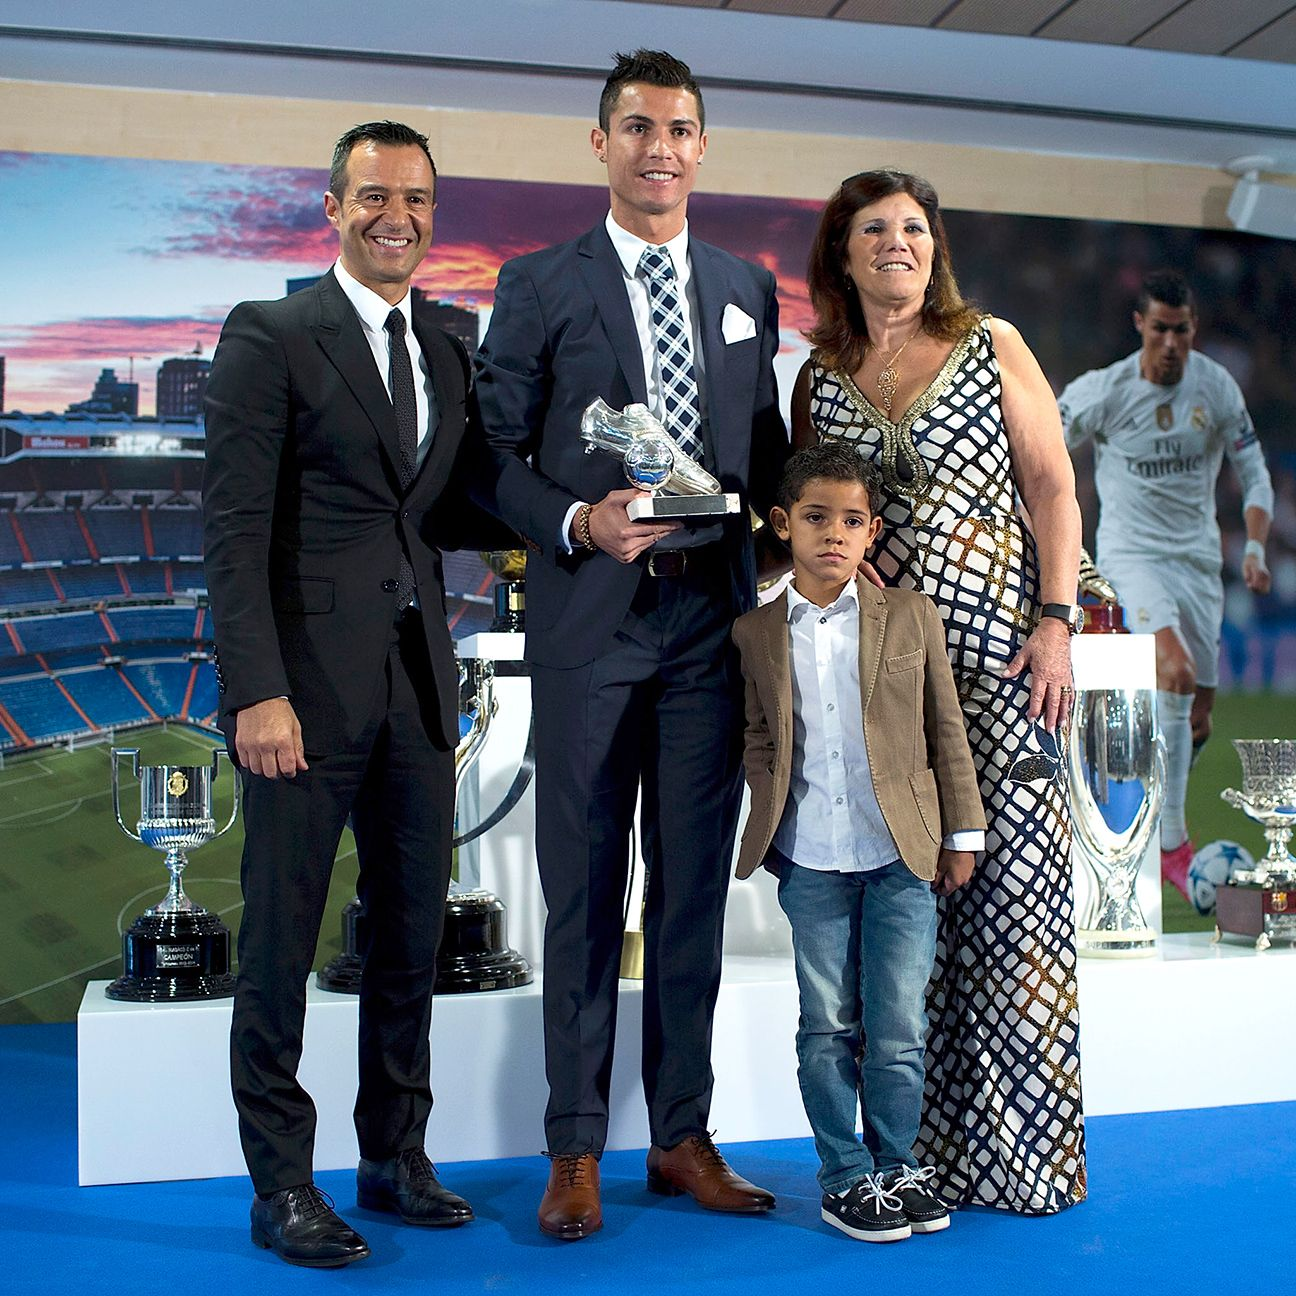 Agent Jorge Mendes, left, and mother Maria Dolores dos Santos, right, are featured prominently in